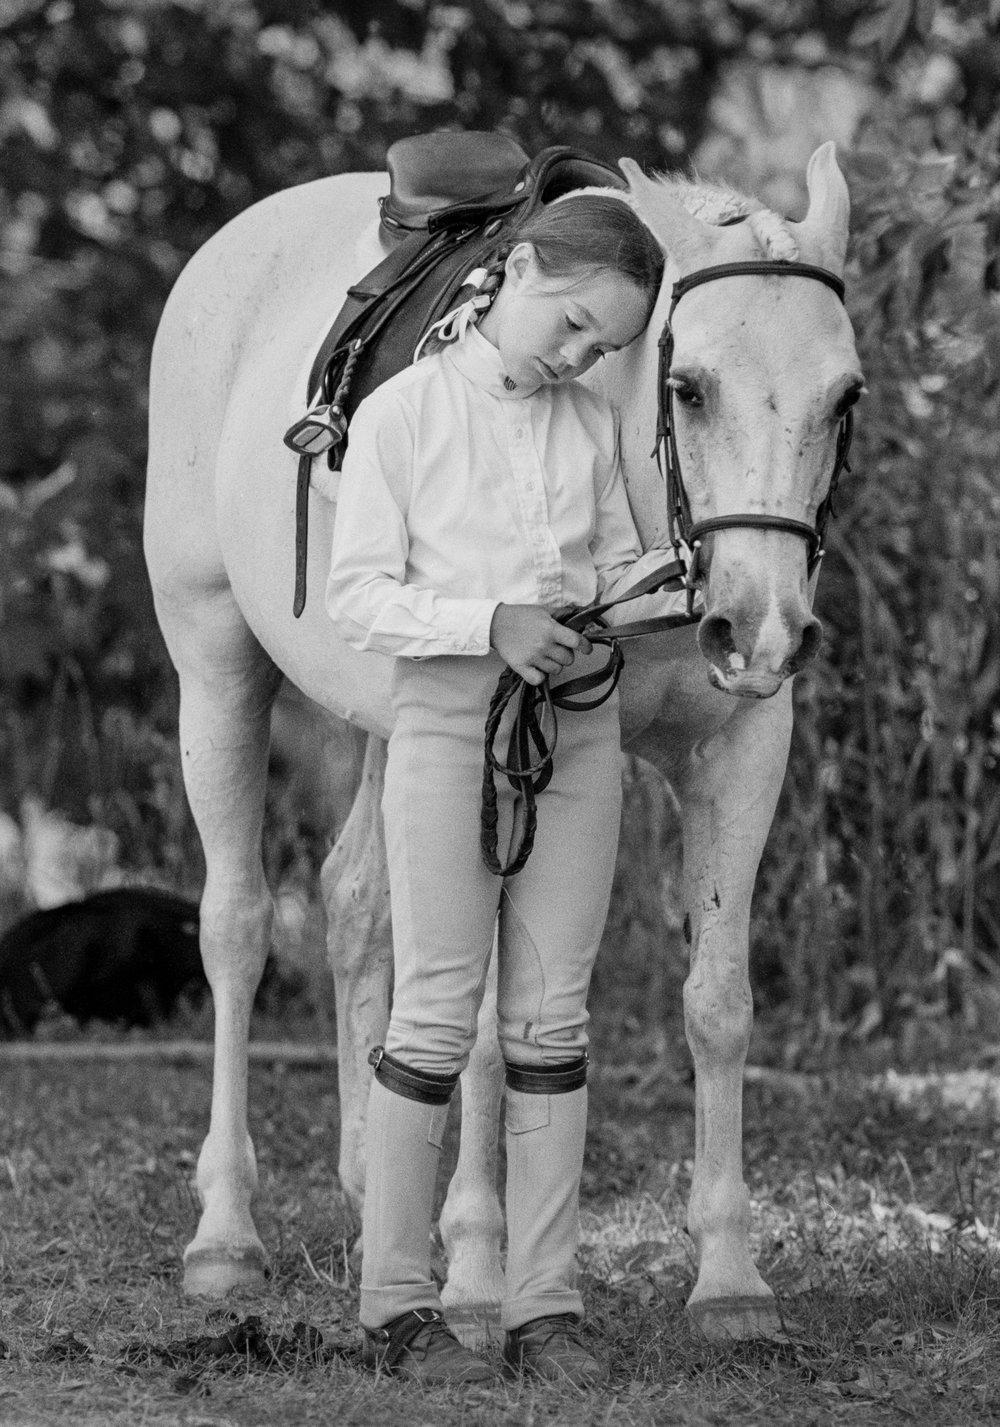 Katie Kirsch and her pony Adam Ant after failing to qualify in the pony hunter event at the Cleveland Hunter Jumper Classic in Moreland Hills, Ohio